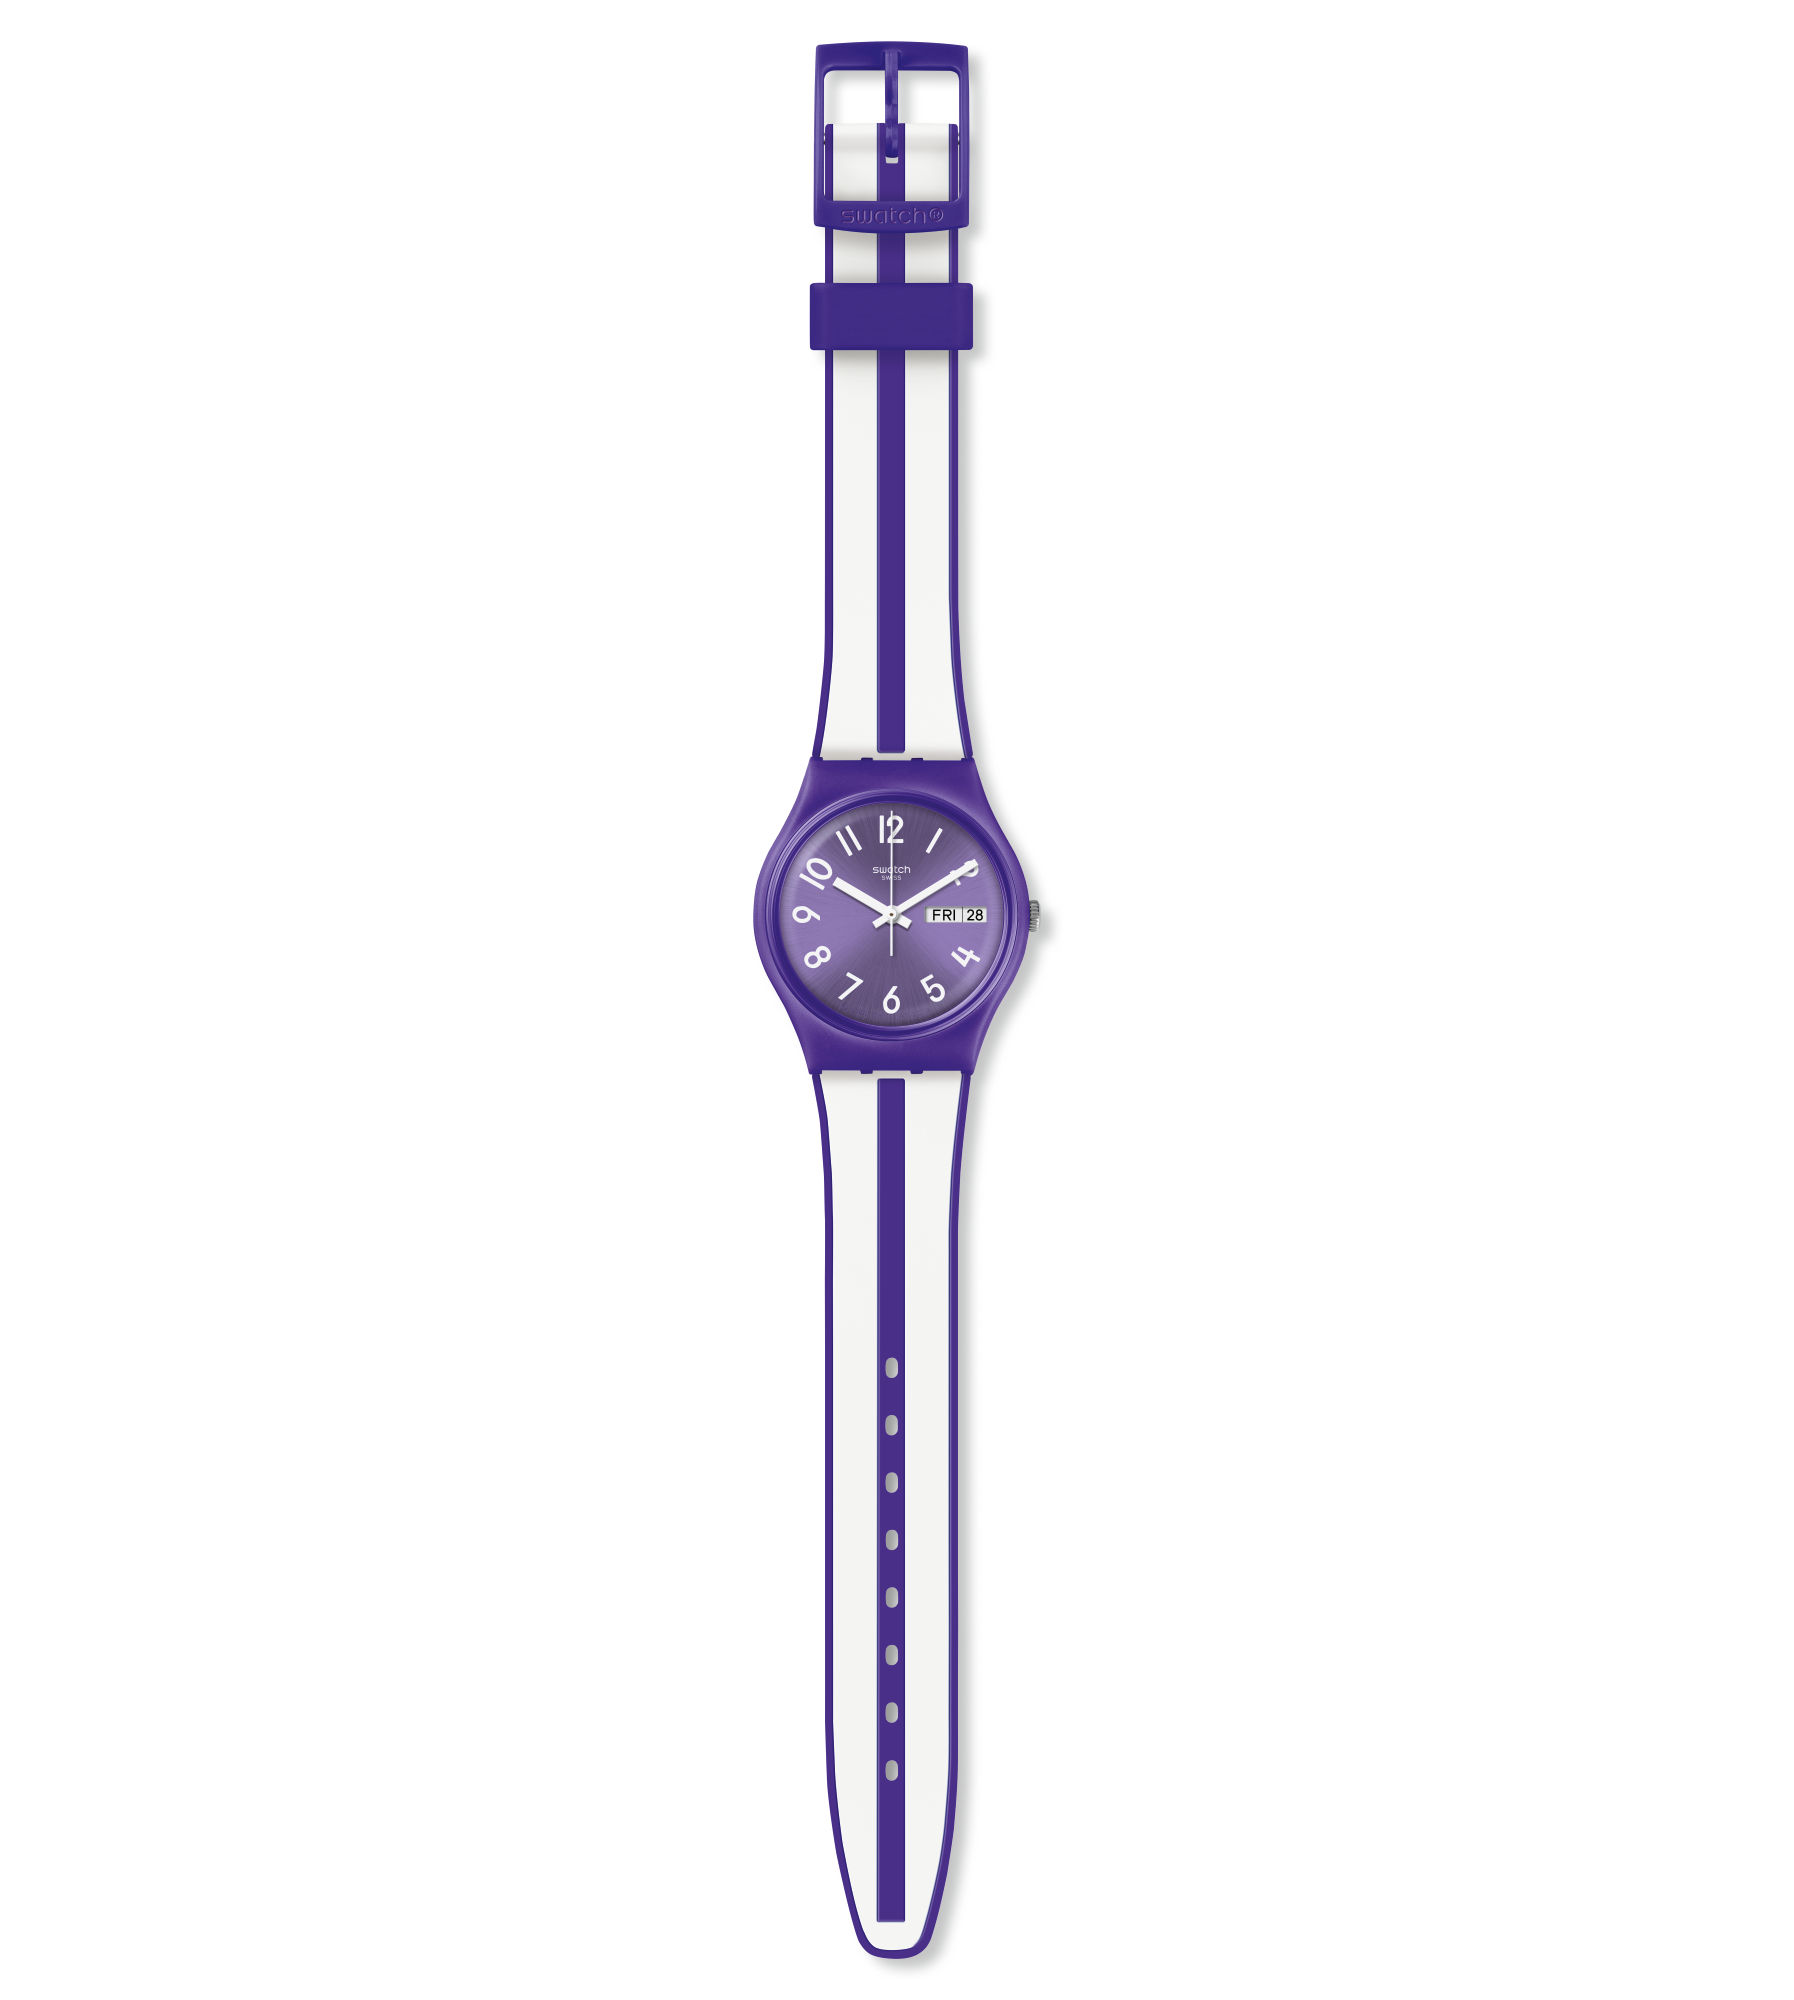 SWATCH UNISEX WATCH DAUGHTER IN LAW, MULBERRY REF. GV701